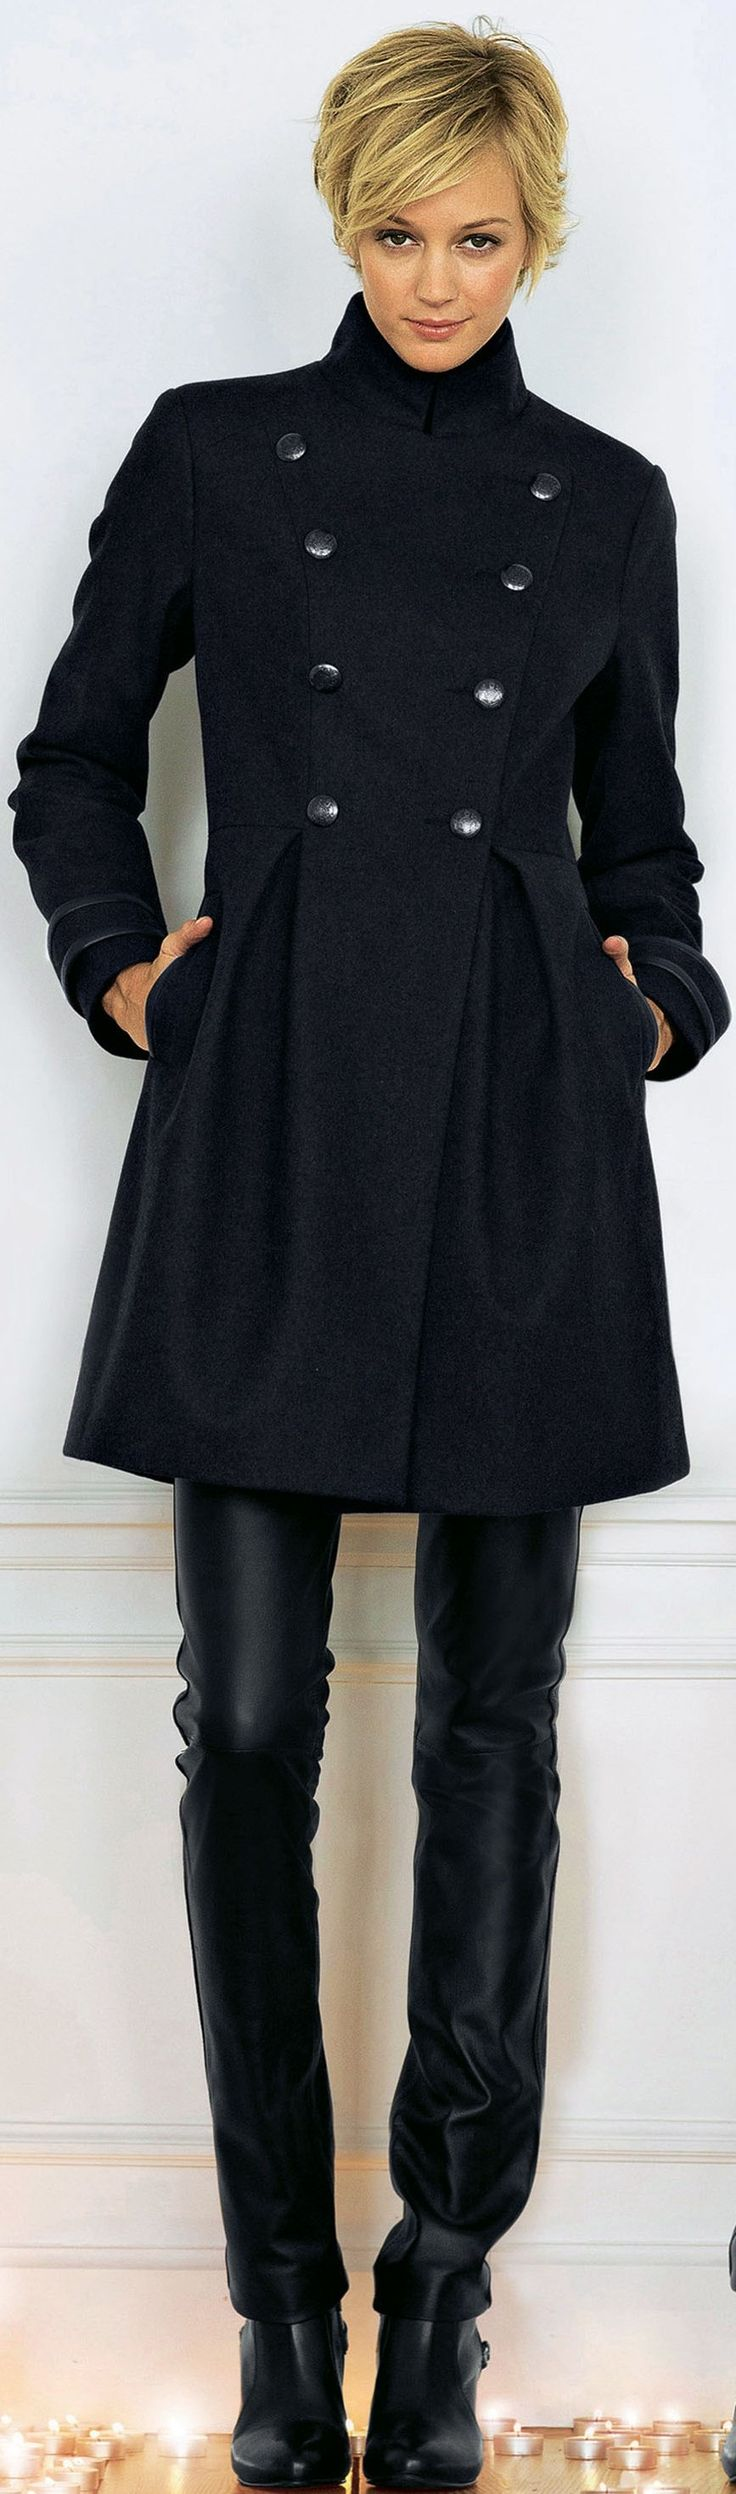 Hot coats for women over 40 - this coat is from La Redoute - read article - http://boomerinas.com/2013/11/06/trendy-coats-for-fall-winter-mature-woman-seeking-cute-comfortable-jacket-for-long-term-relationship/